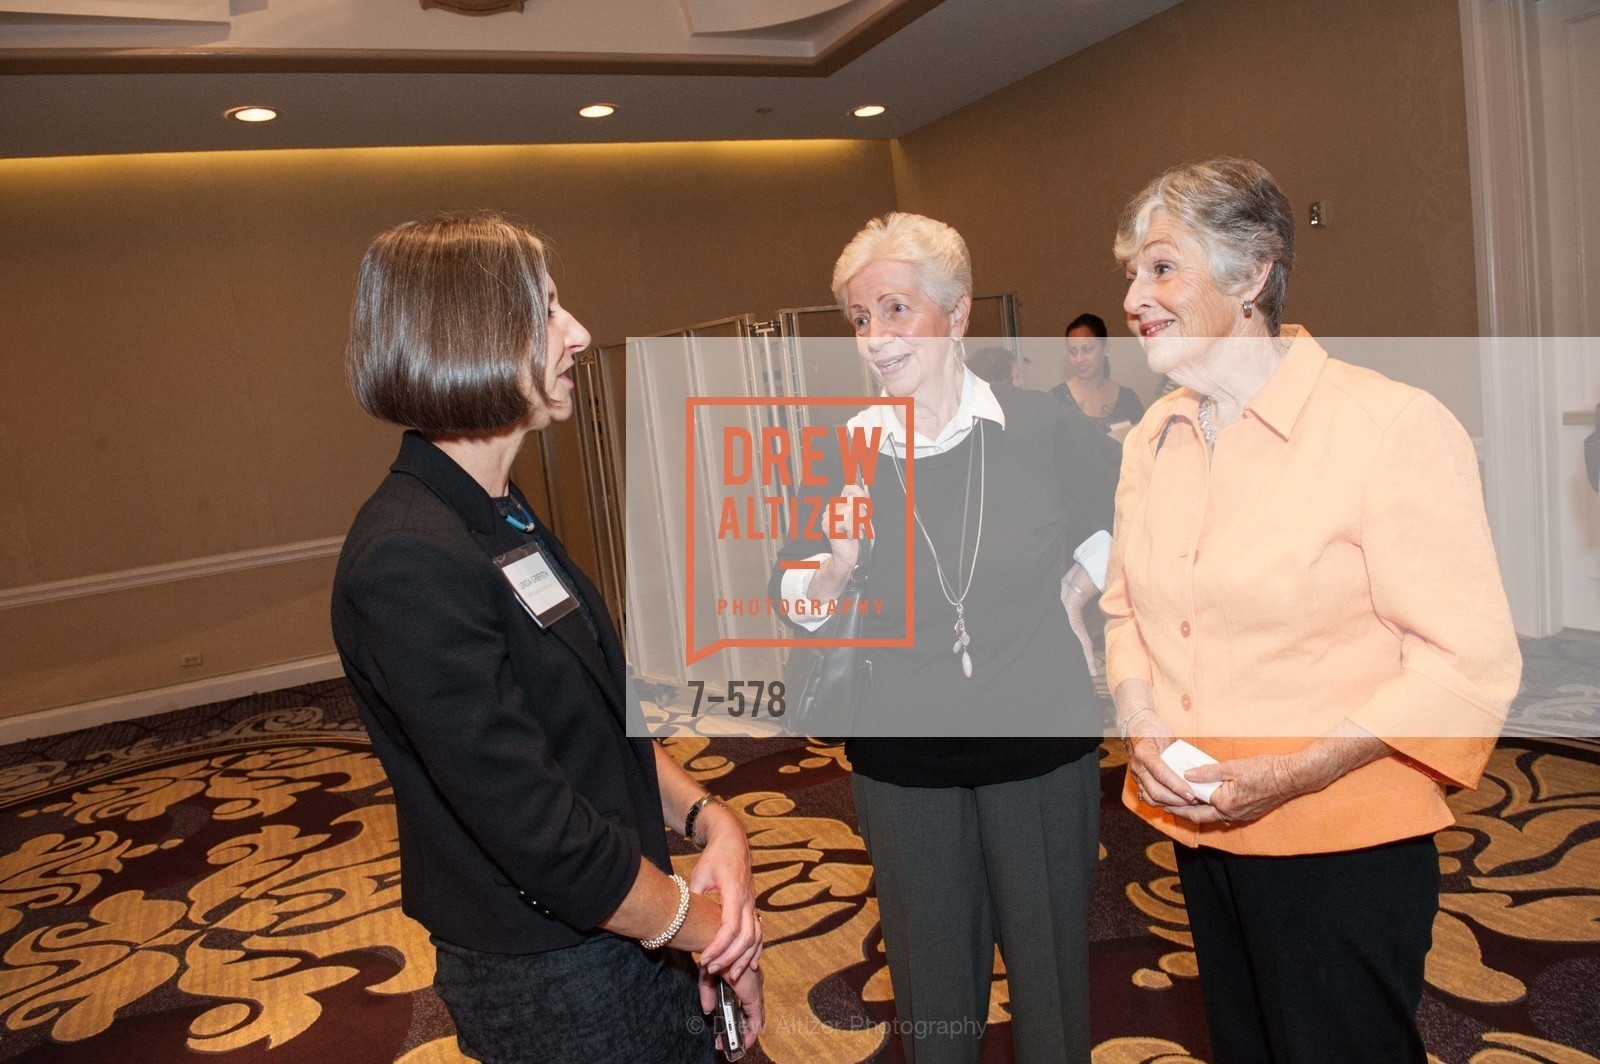 Linda Griffith, Diane Farley, Joan McDonald, HOMELESS PRENATAL Annual Luncheon 2014, US, September 30th, 2014,Drew Altizer, Drew Altizer Photography, full-service agency, private events, San Francisco photographer, photographer california